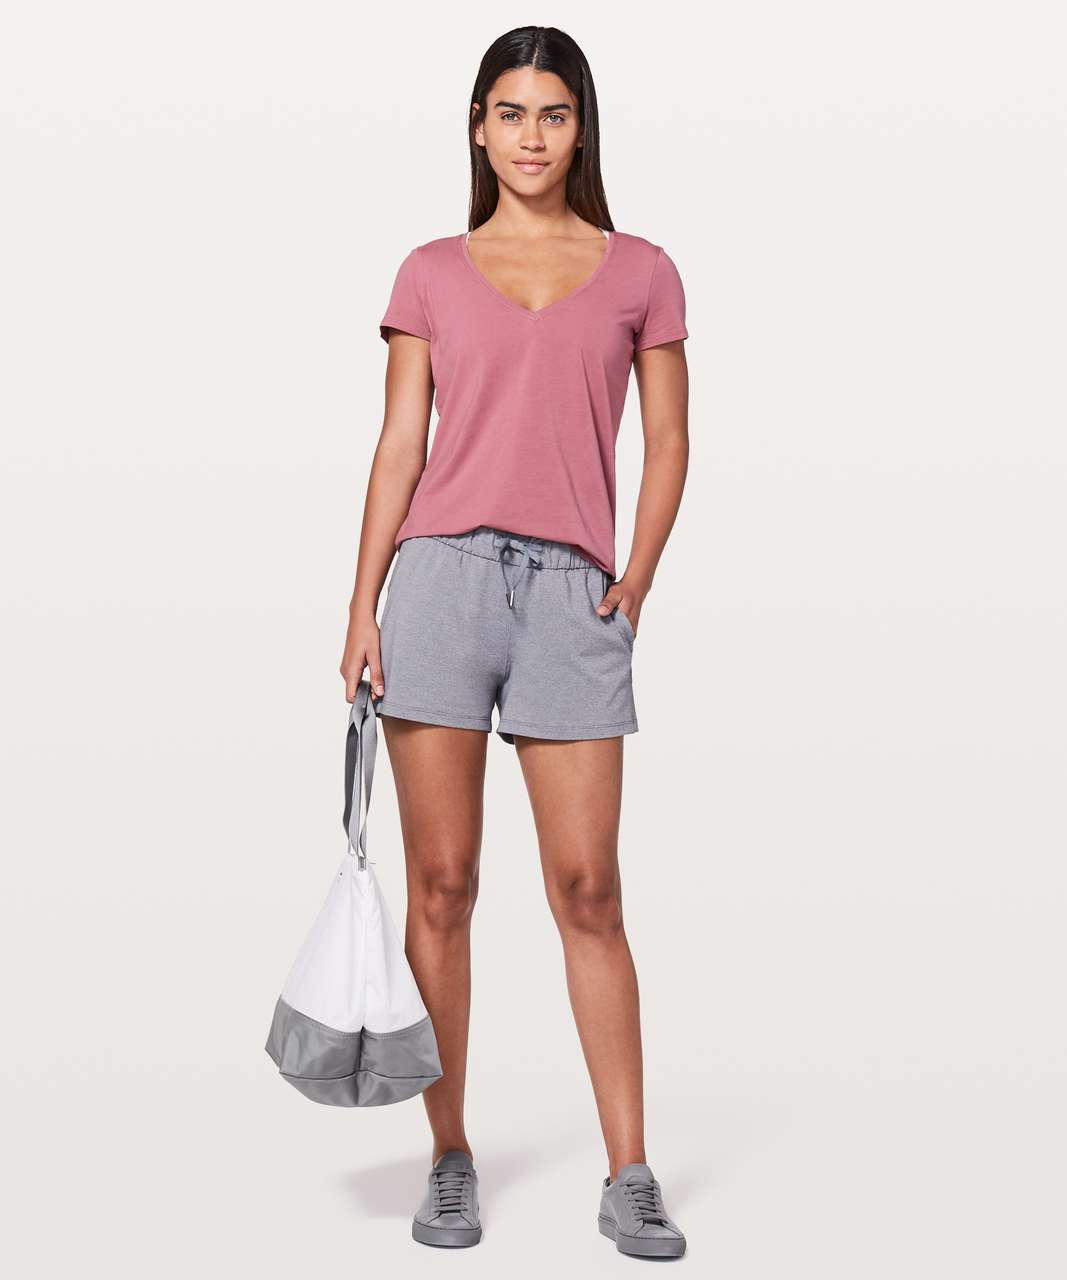 Lululemon Love Tee V - Moss Rose